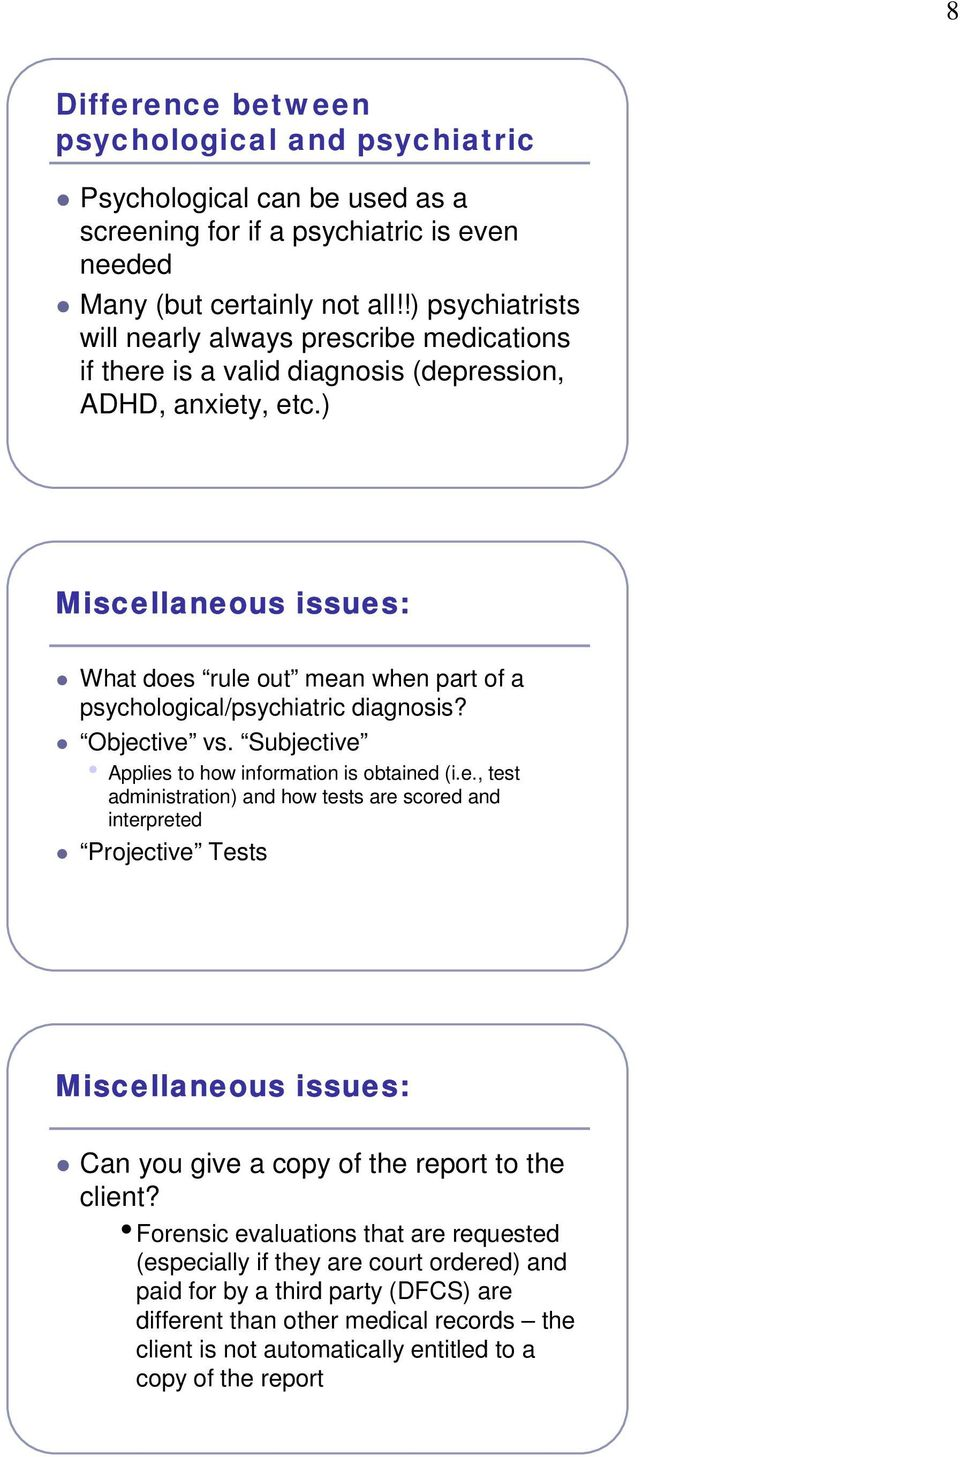 ) Miscellaneous issues: What does rule out mean when part of a psychological/psychiatric diagnosis? Objective vs. Subjective Applies to how information is obtained (i.e., test administration) and how tests are scored and interpreted Projective Tests Miscellaneous issues: Can you give a copy of the report to the client?